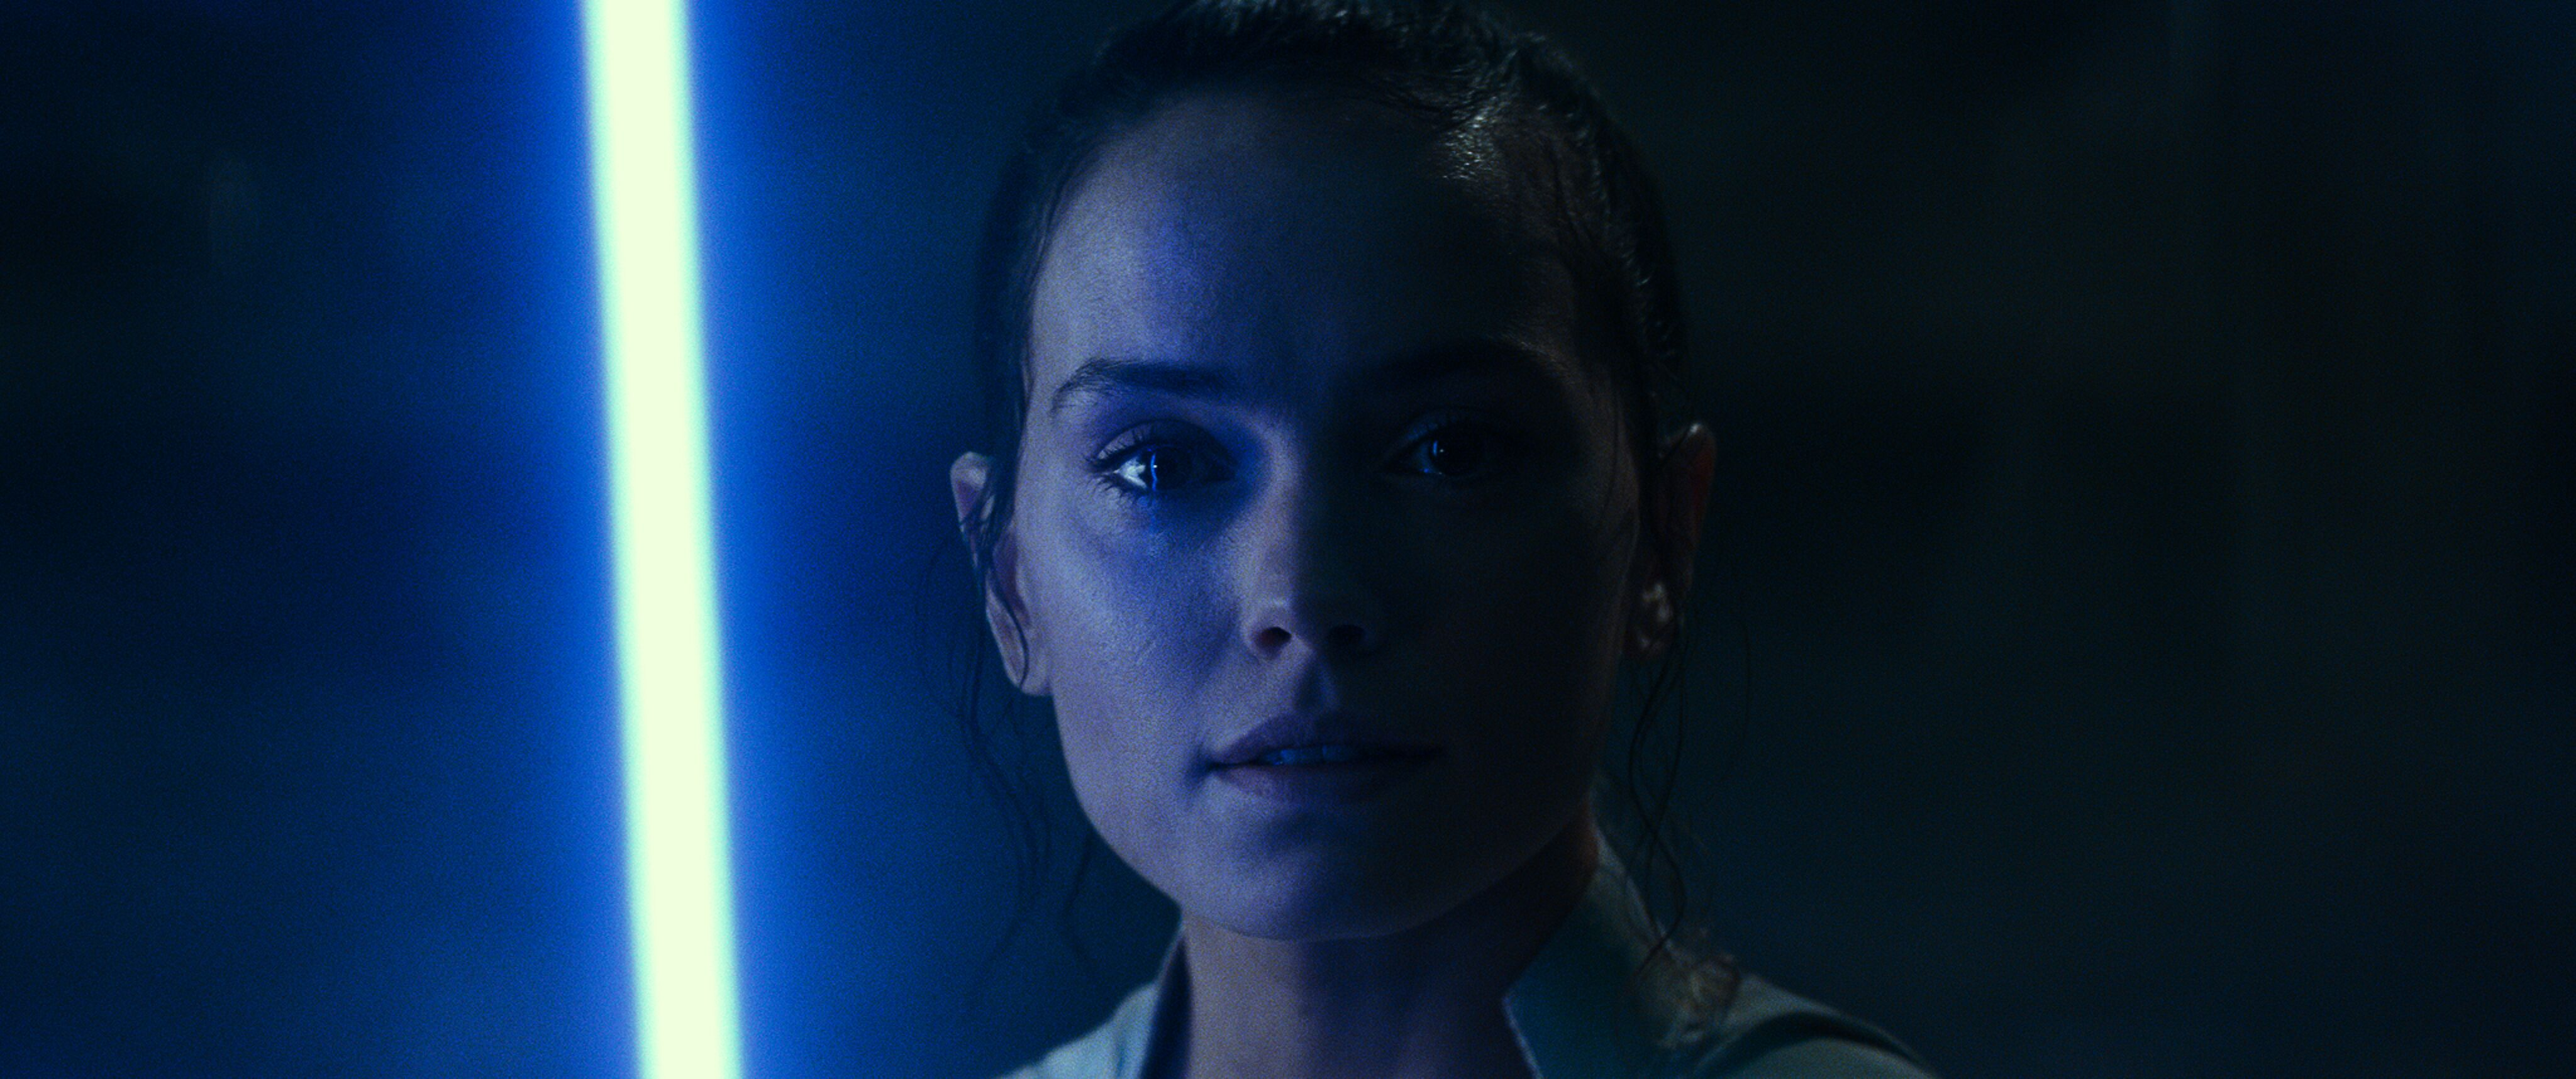 Like my father before me: Identity choice in the Star Wars Saga